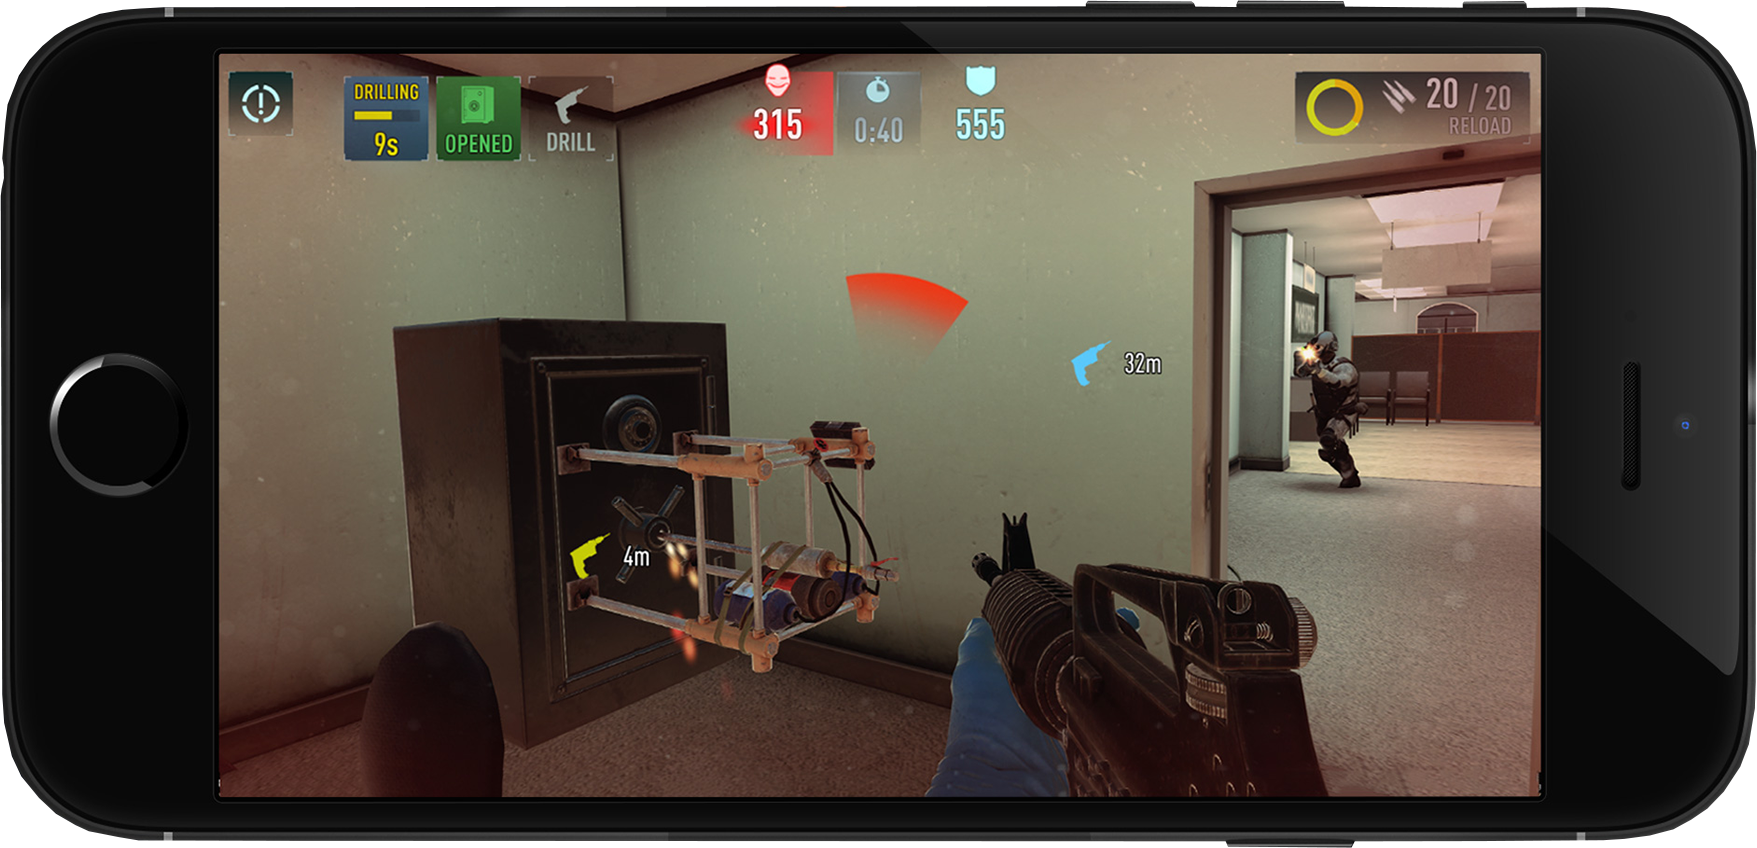 Get your first look at FPS Payday: Crime War running on mobile, coming soon